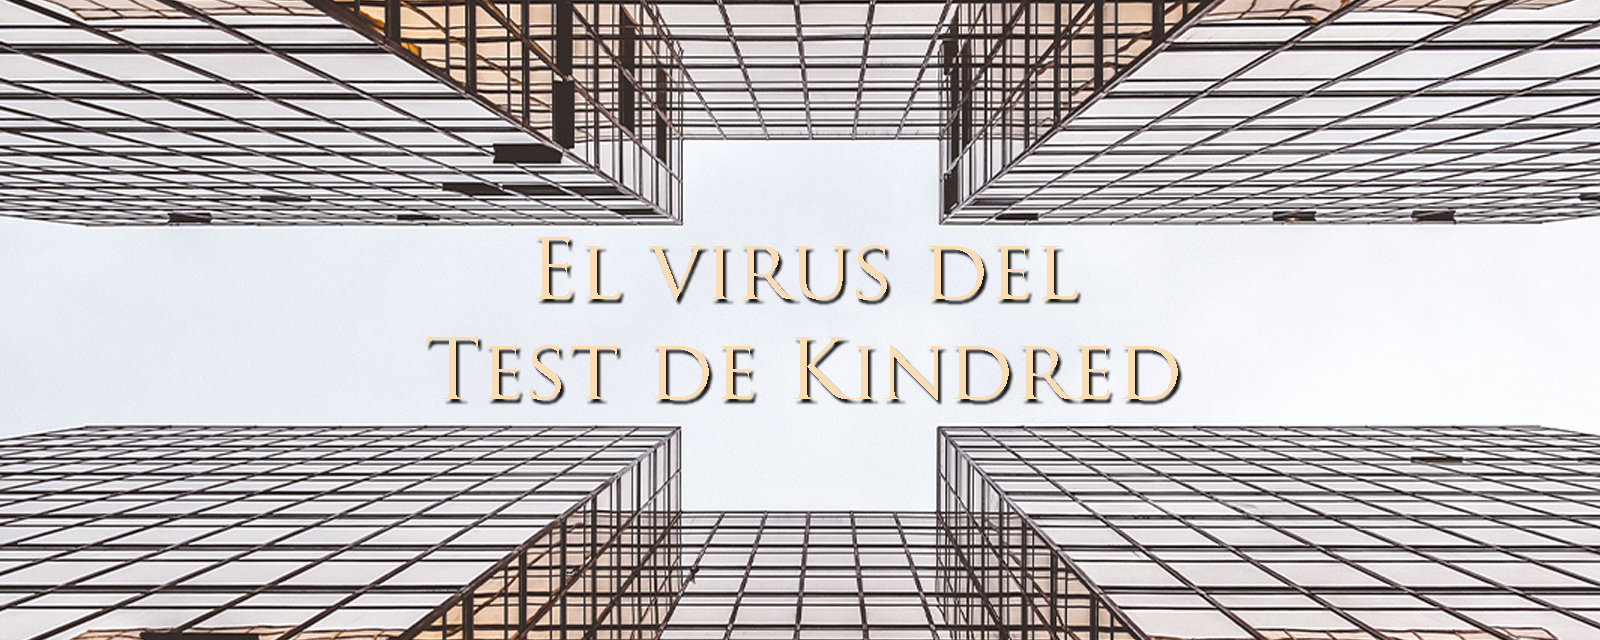 El virus del Test de Kindred